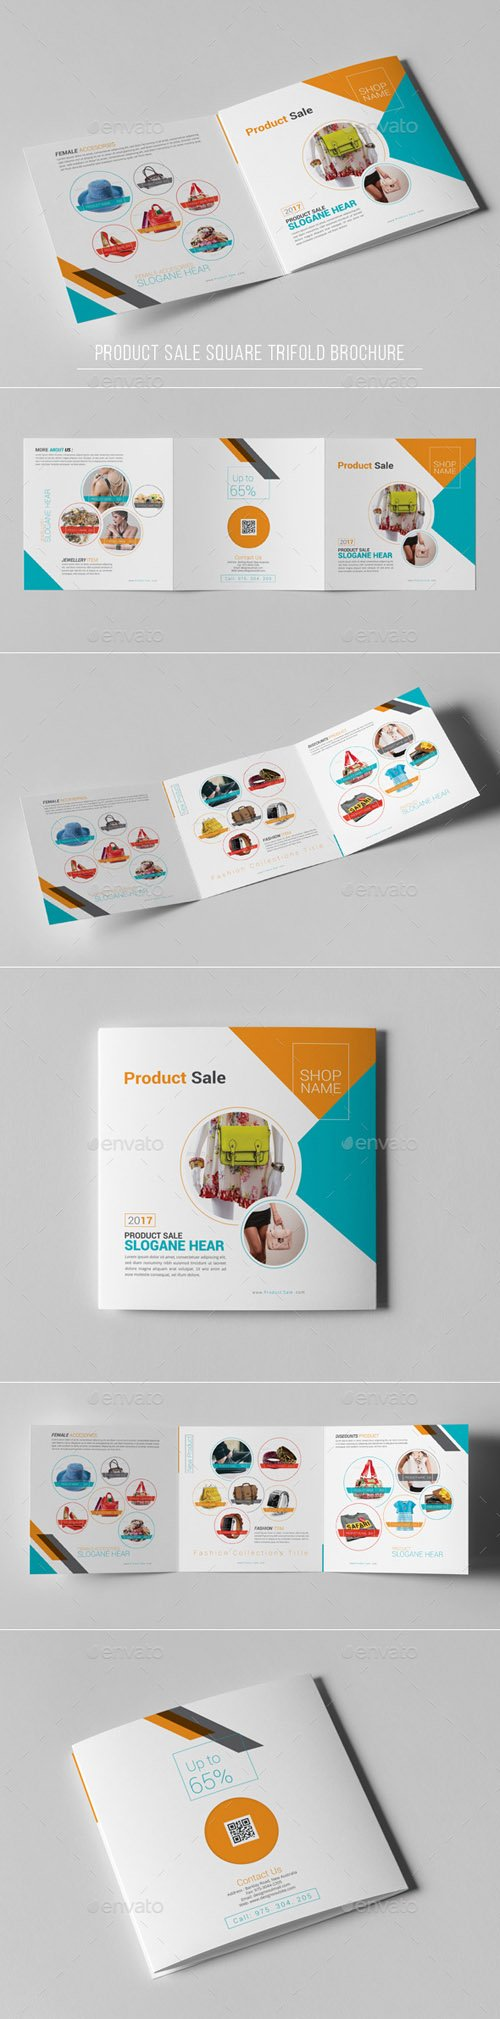 Product Sale Square Trifold Brochure 19307235